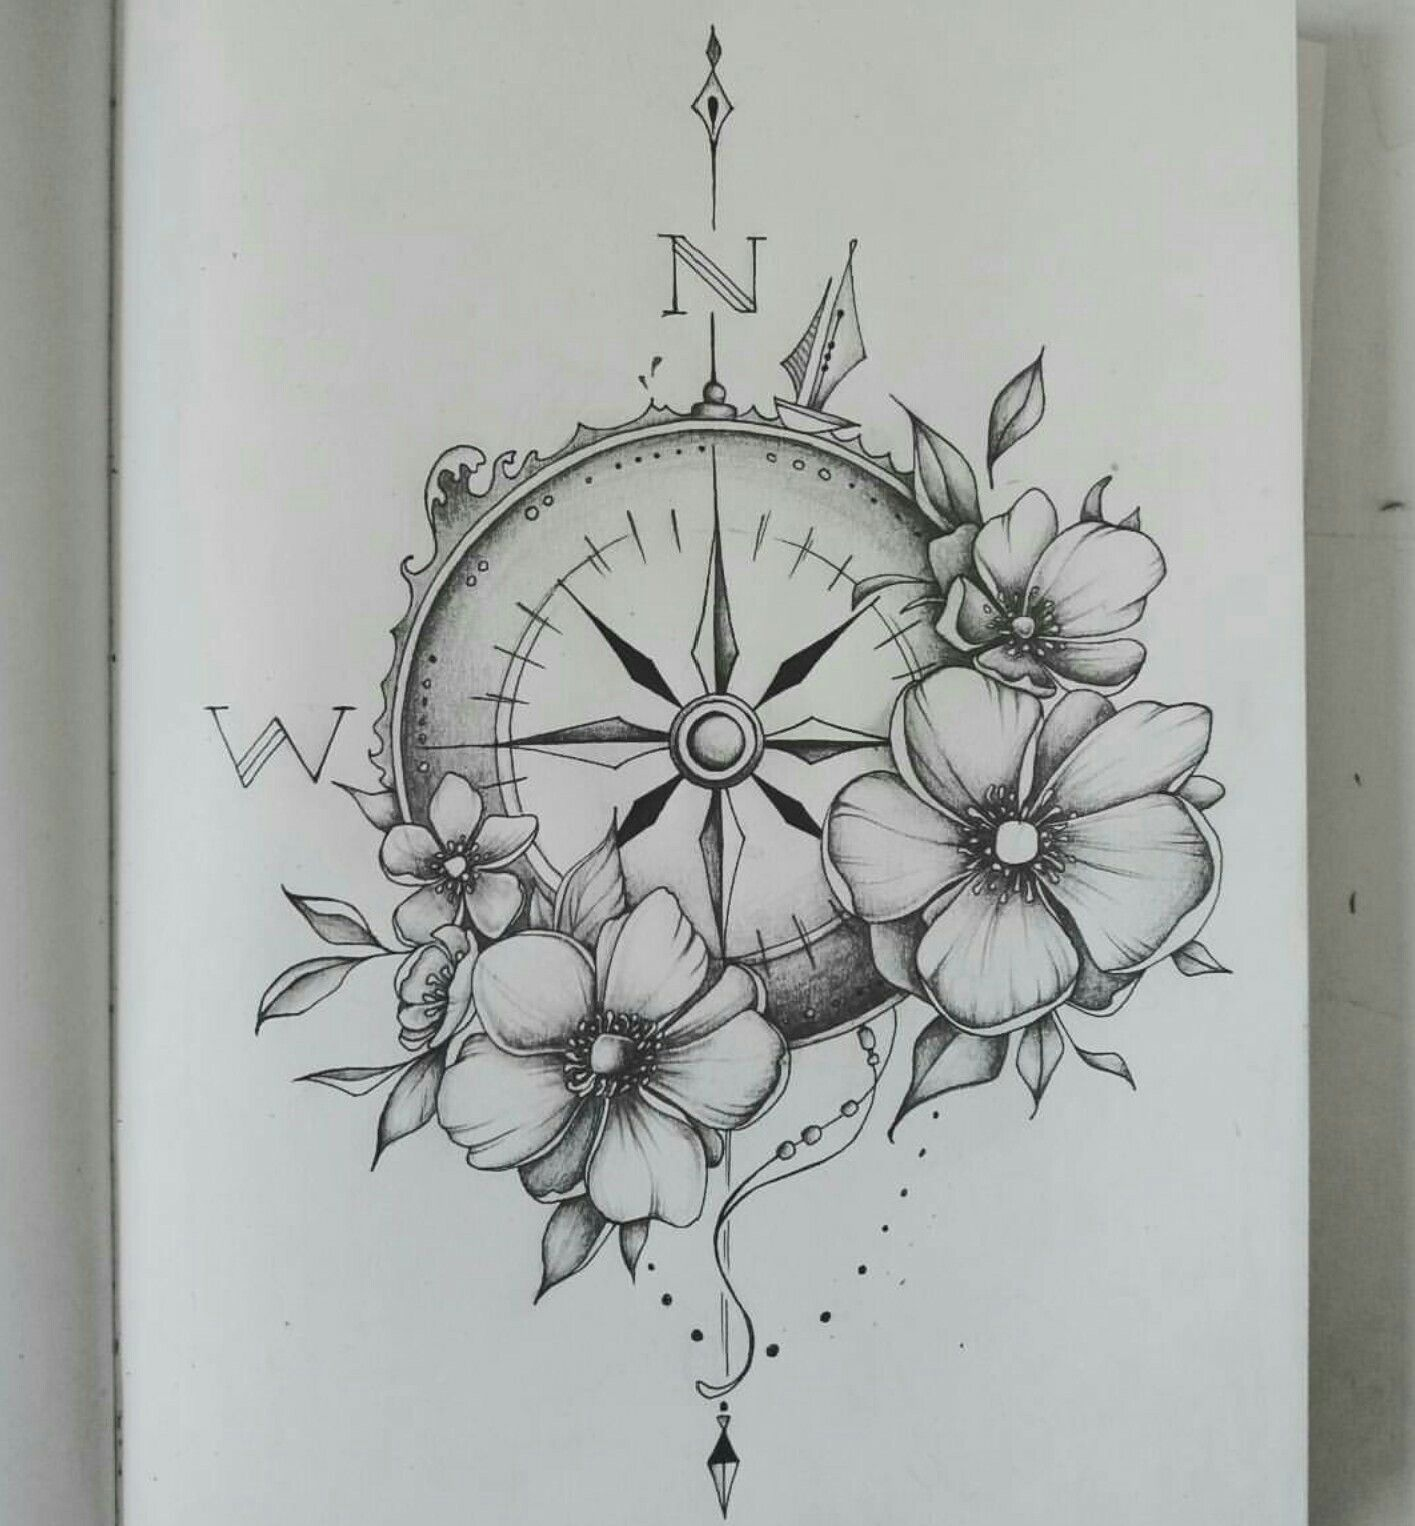 Small tattoo design ideas this is really cool to me because someone drew it it would be a